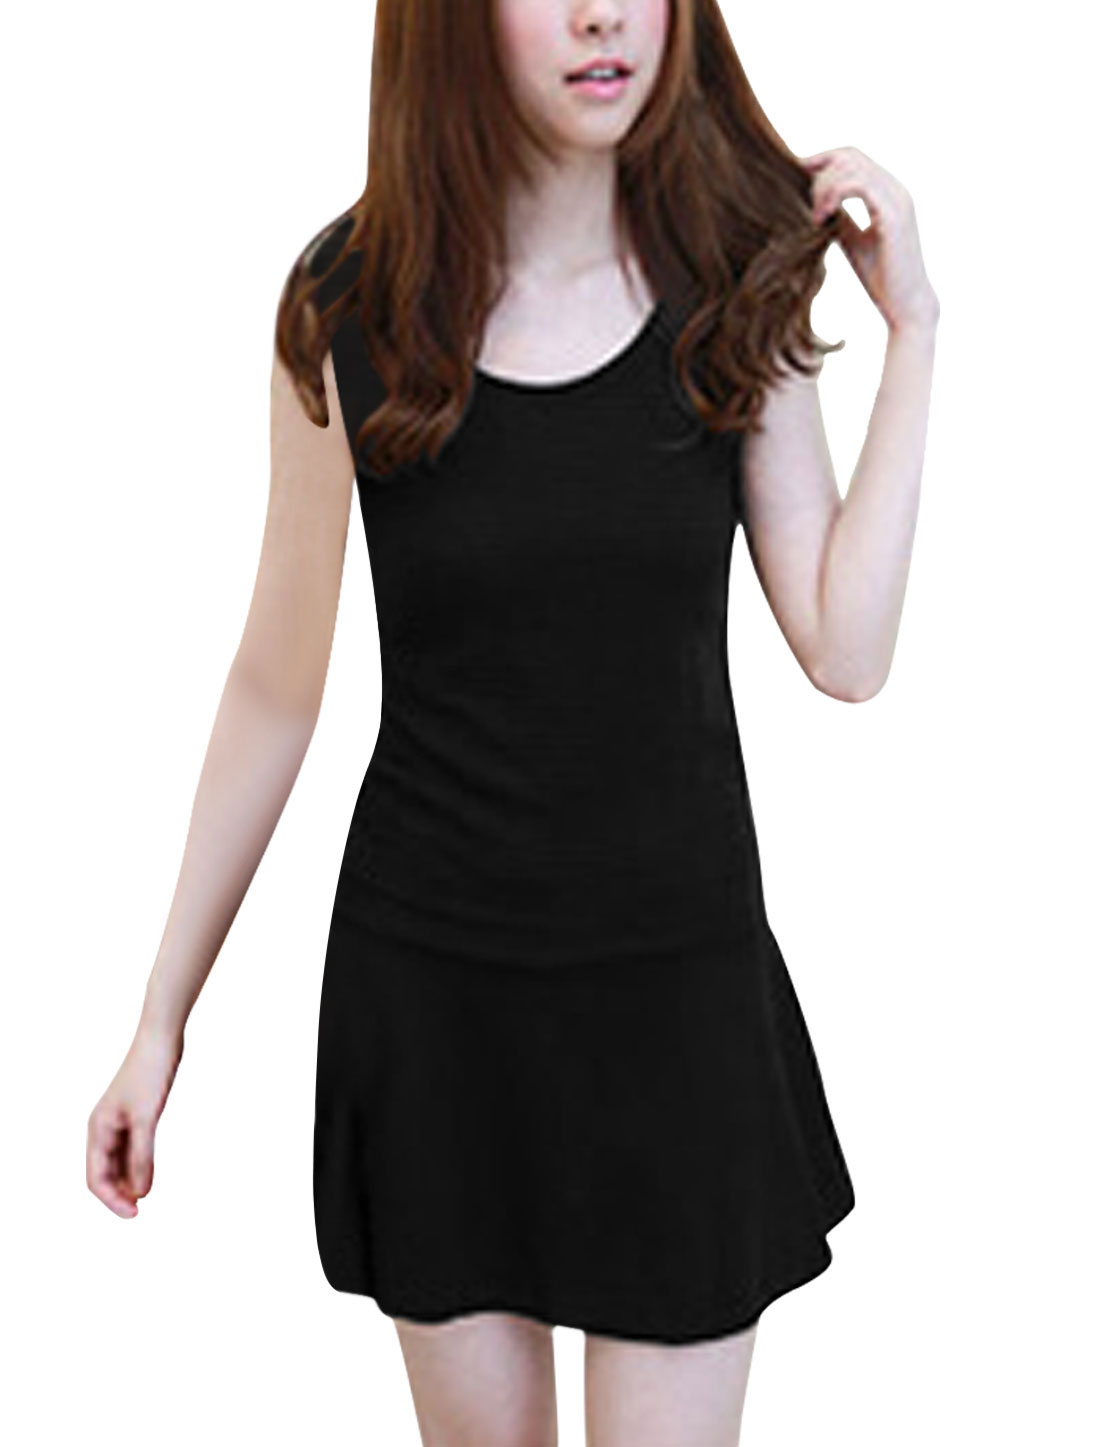 Ladies Black Sleeveless Casual Summer Mini Dress Xs